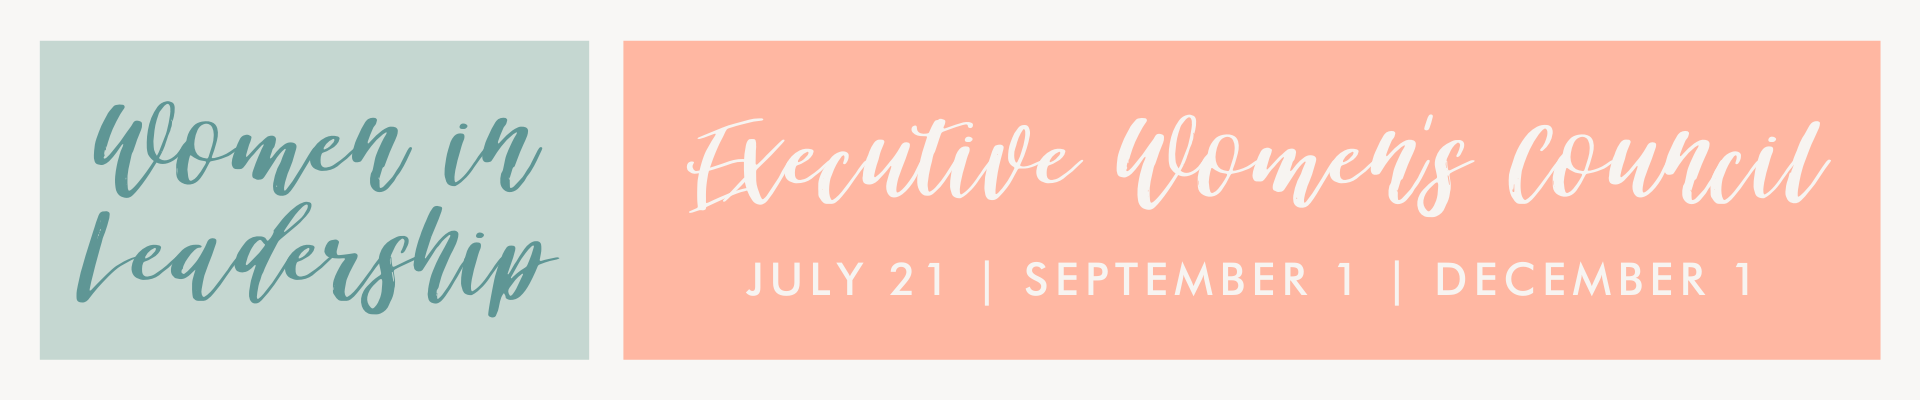 executive womens council july september december women in leadership lecture series exclusive access